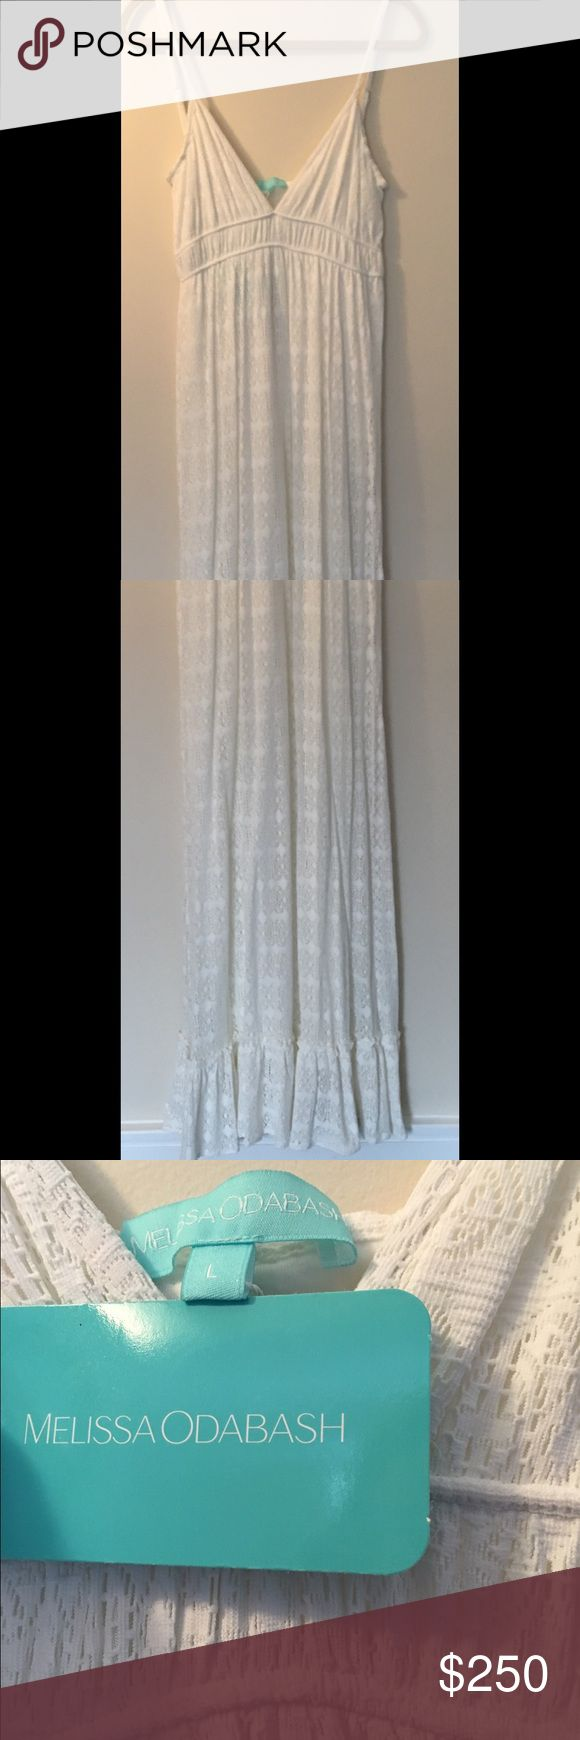 Melissa Odabash Maxi Dress Size:L Absolutely stunning Melissa Odabash size large maxi dress. This new with tags lace dress is so beautiful long and flowy. Melissa Odabash Dresses Maxi